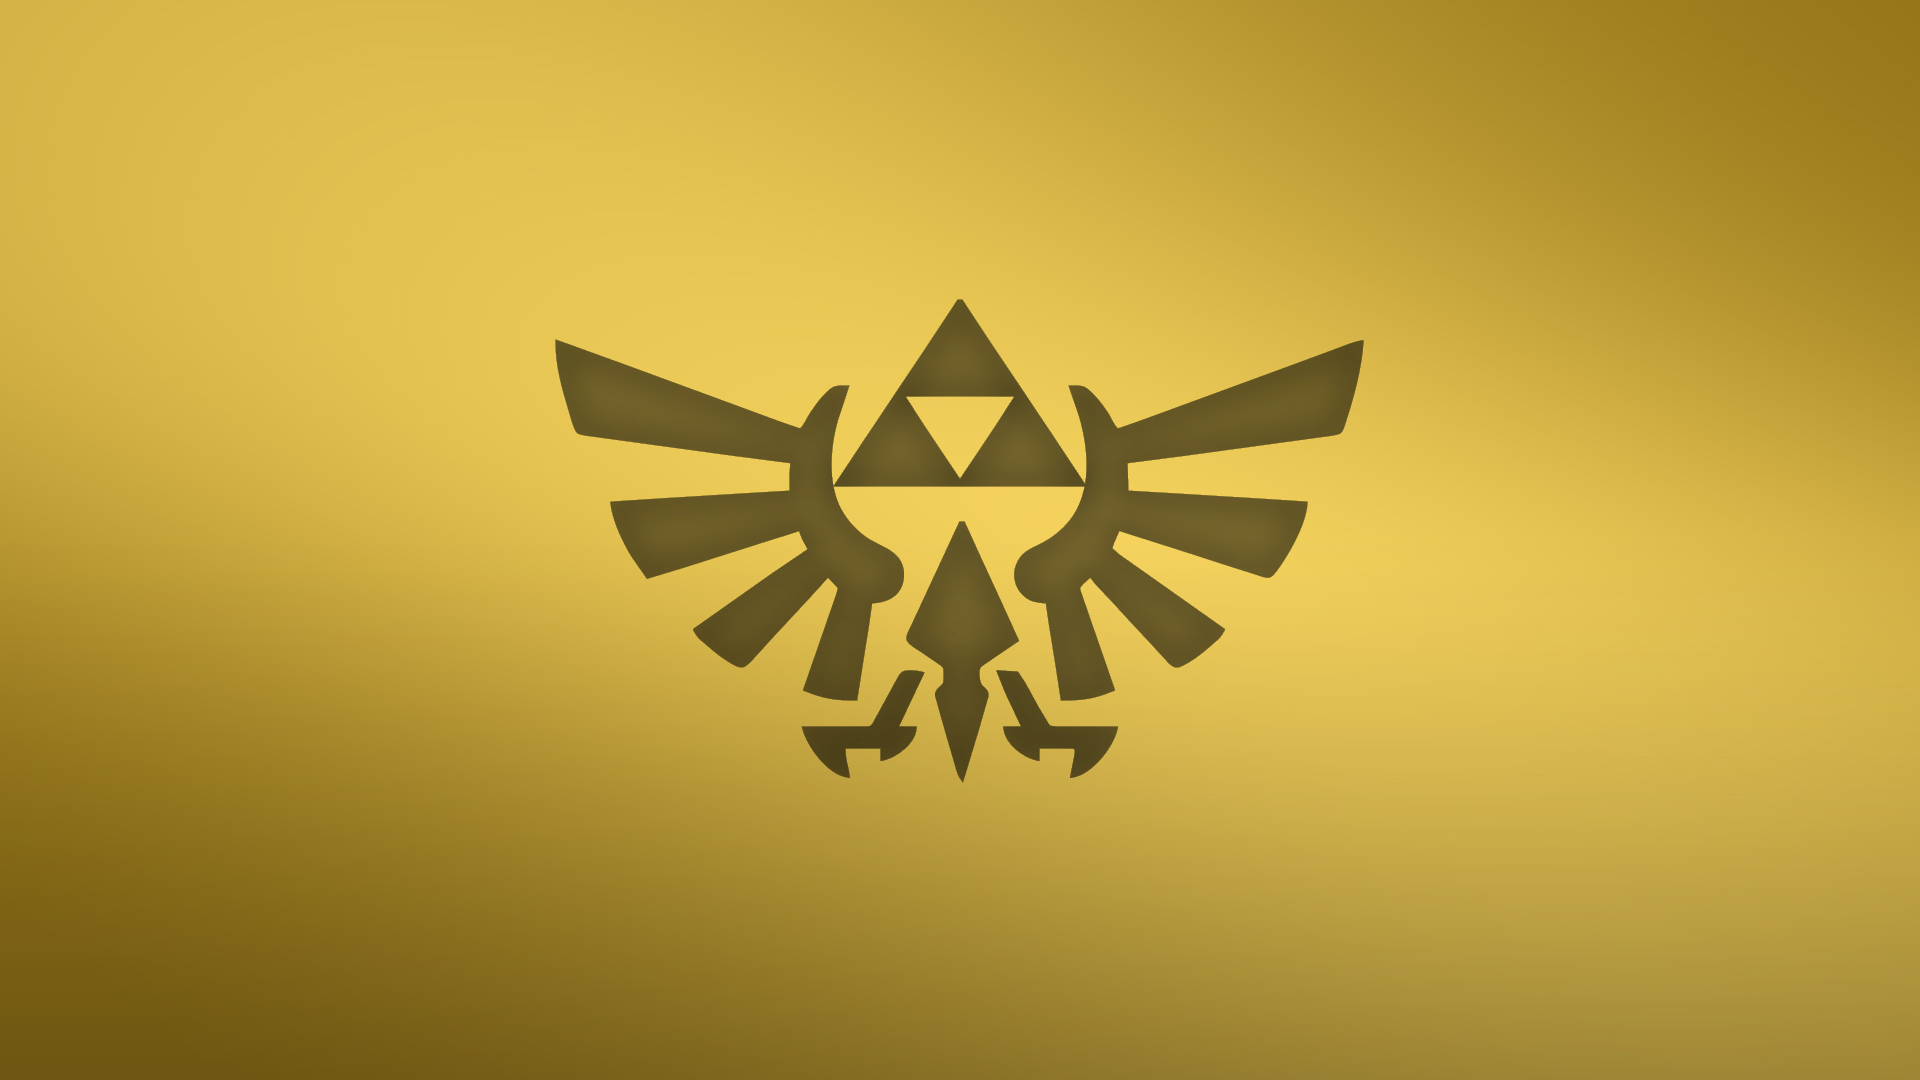 Triforce Wallpapers Top Free Triforce Backgrounds Wallpaperaccess